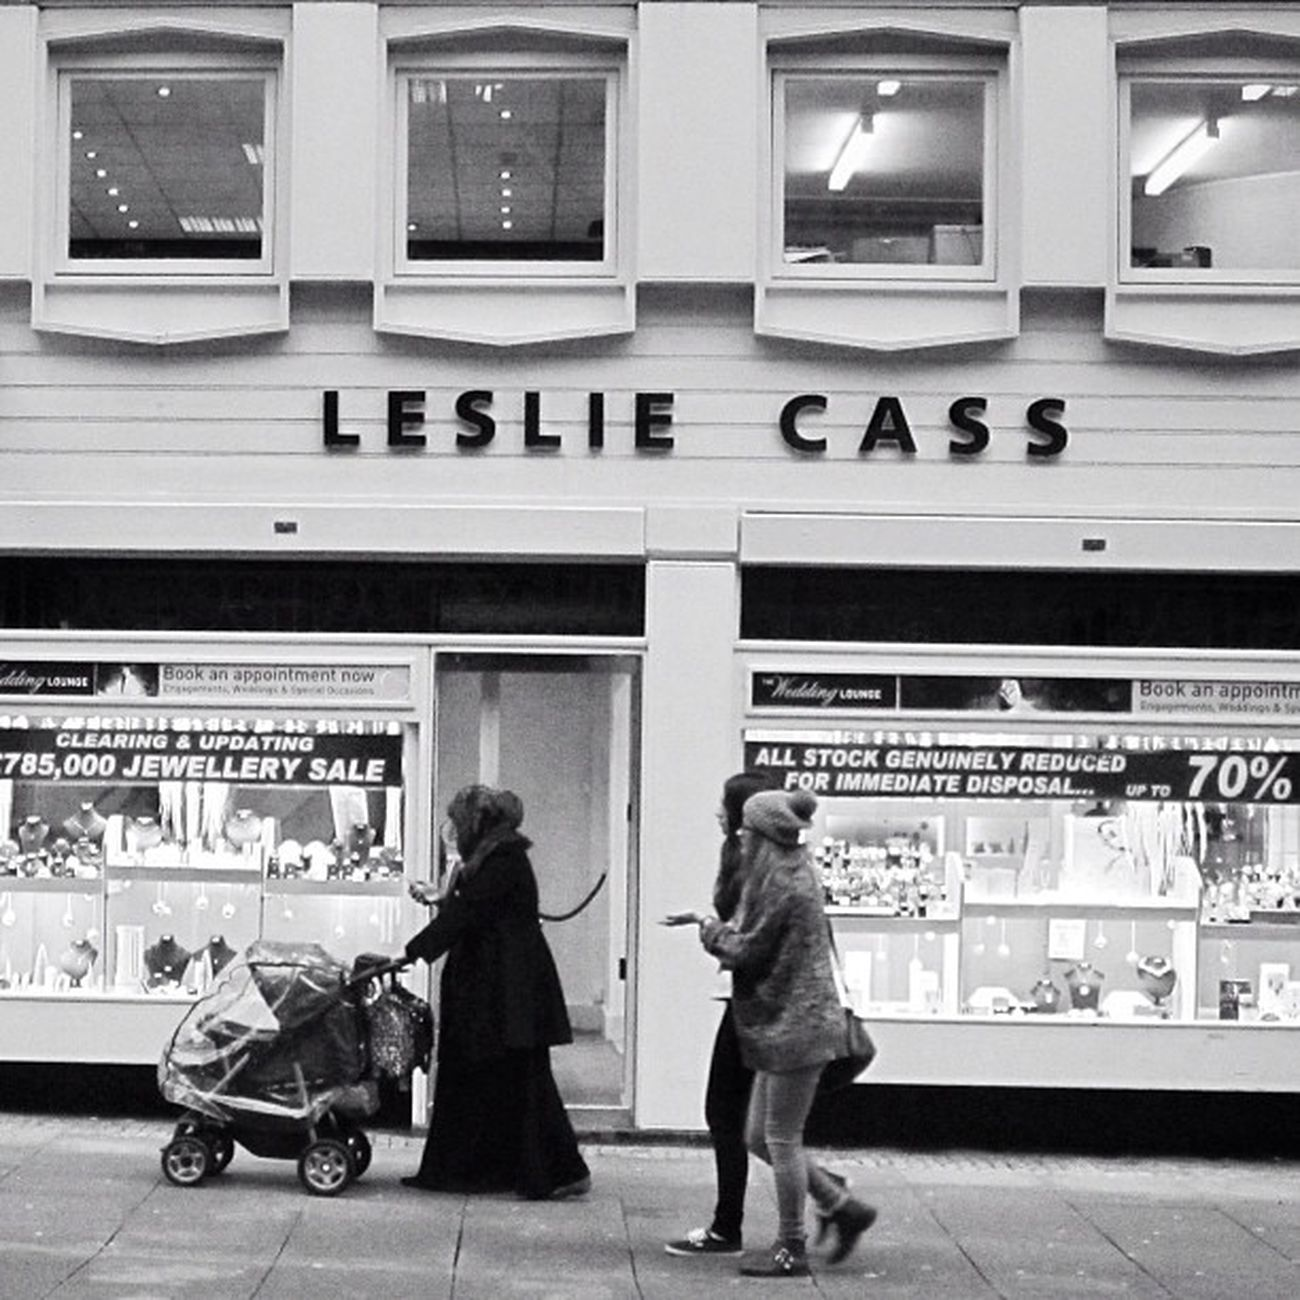 Leslie Cass Woman Monochrome Architecture Bw Streetphotography Sheffield People Bnw Candid England Walking Bn Urban Leslie Blackandwhite Architectureporn Windows Archilovers Portrait Cass Façade Pushchair Yorkshire Southyorkshire Mother Lesliecass Window Streetphoto